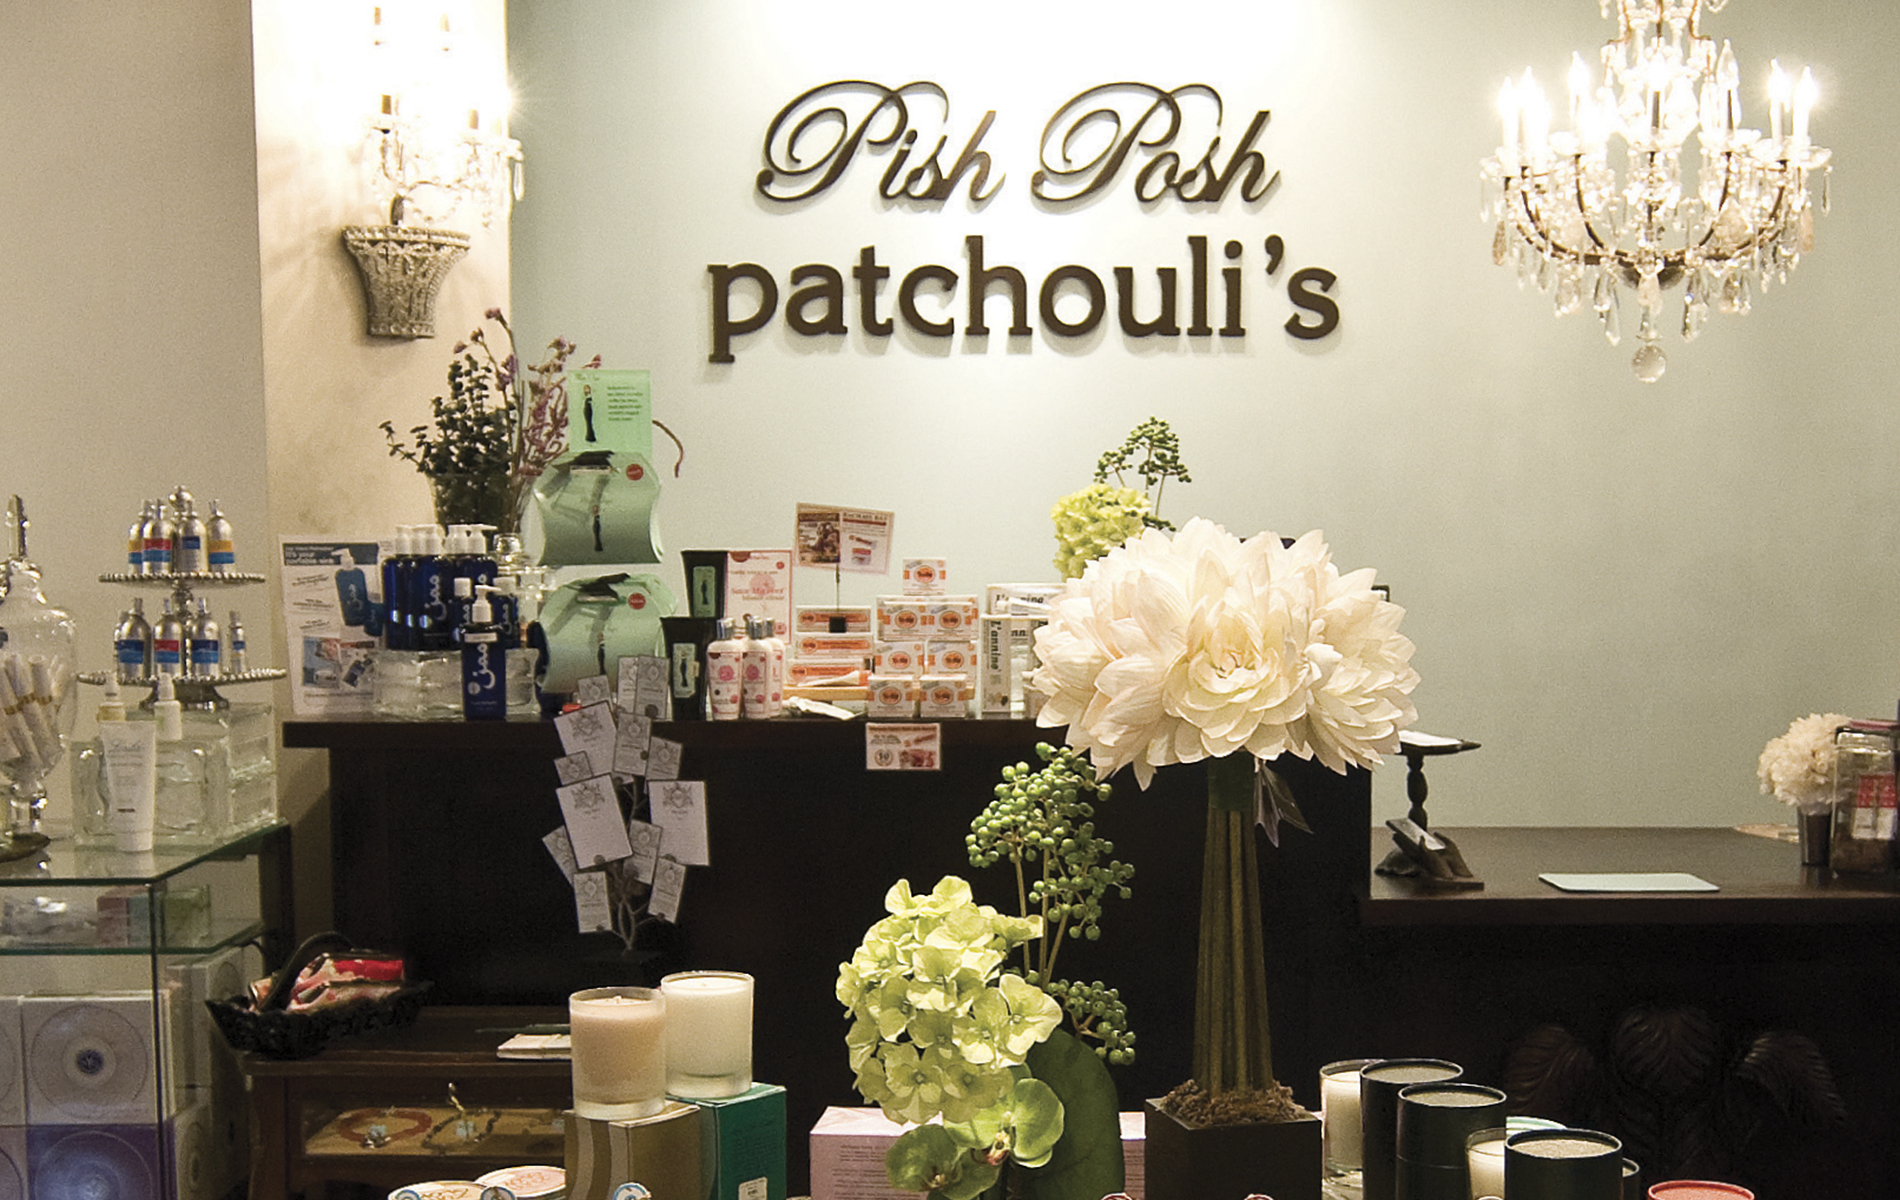 Pish Posh Patchouli's; desk